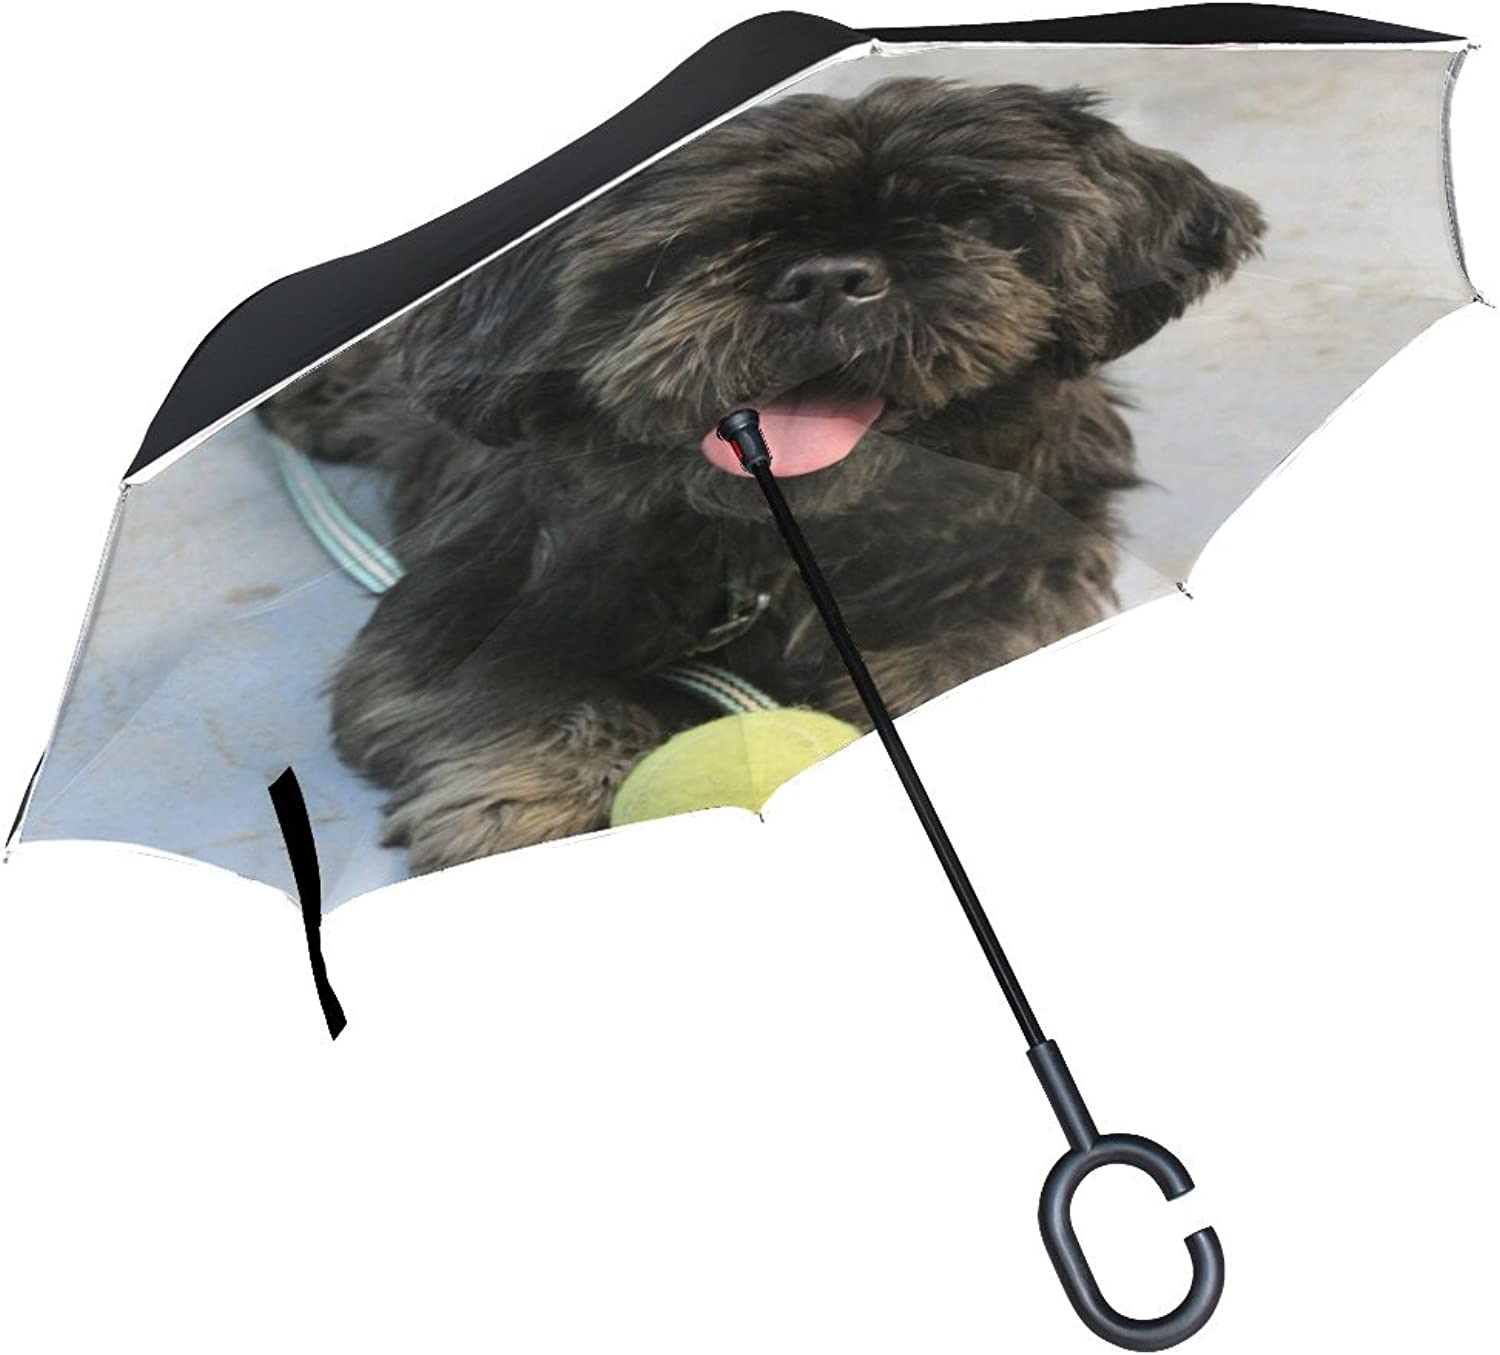 Animal Dog Affenpinscher Black Fluffy Brown Adorable Puppy Animated Ingreened Umbrella Large Double Layer Outdoor Rain Sun Car Reversible Umbrella